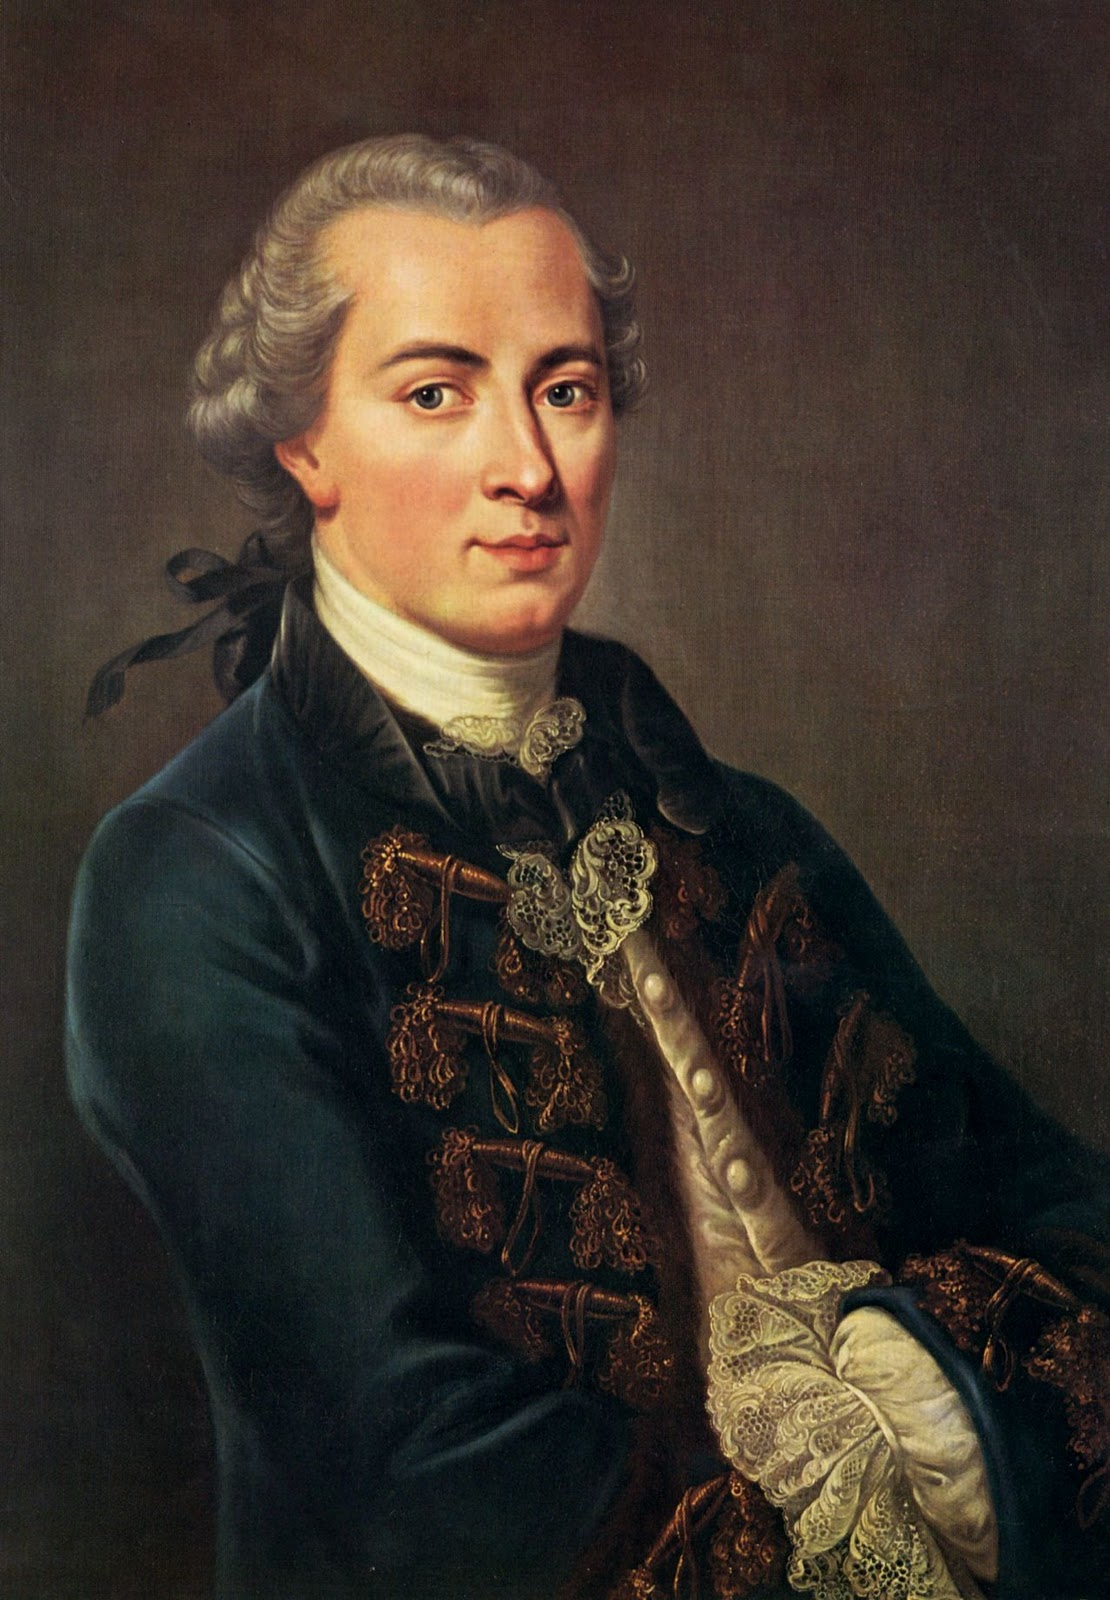 kant or mill Another defect in kant's theory that is resolved in mill's moral system is the lack of specificity although a set of laws for a civilization could be derived from the categorical imperative, it would not be good for handling specific cases.